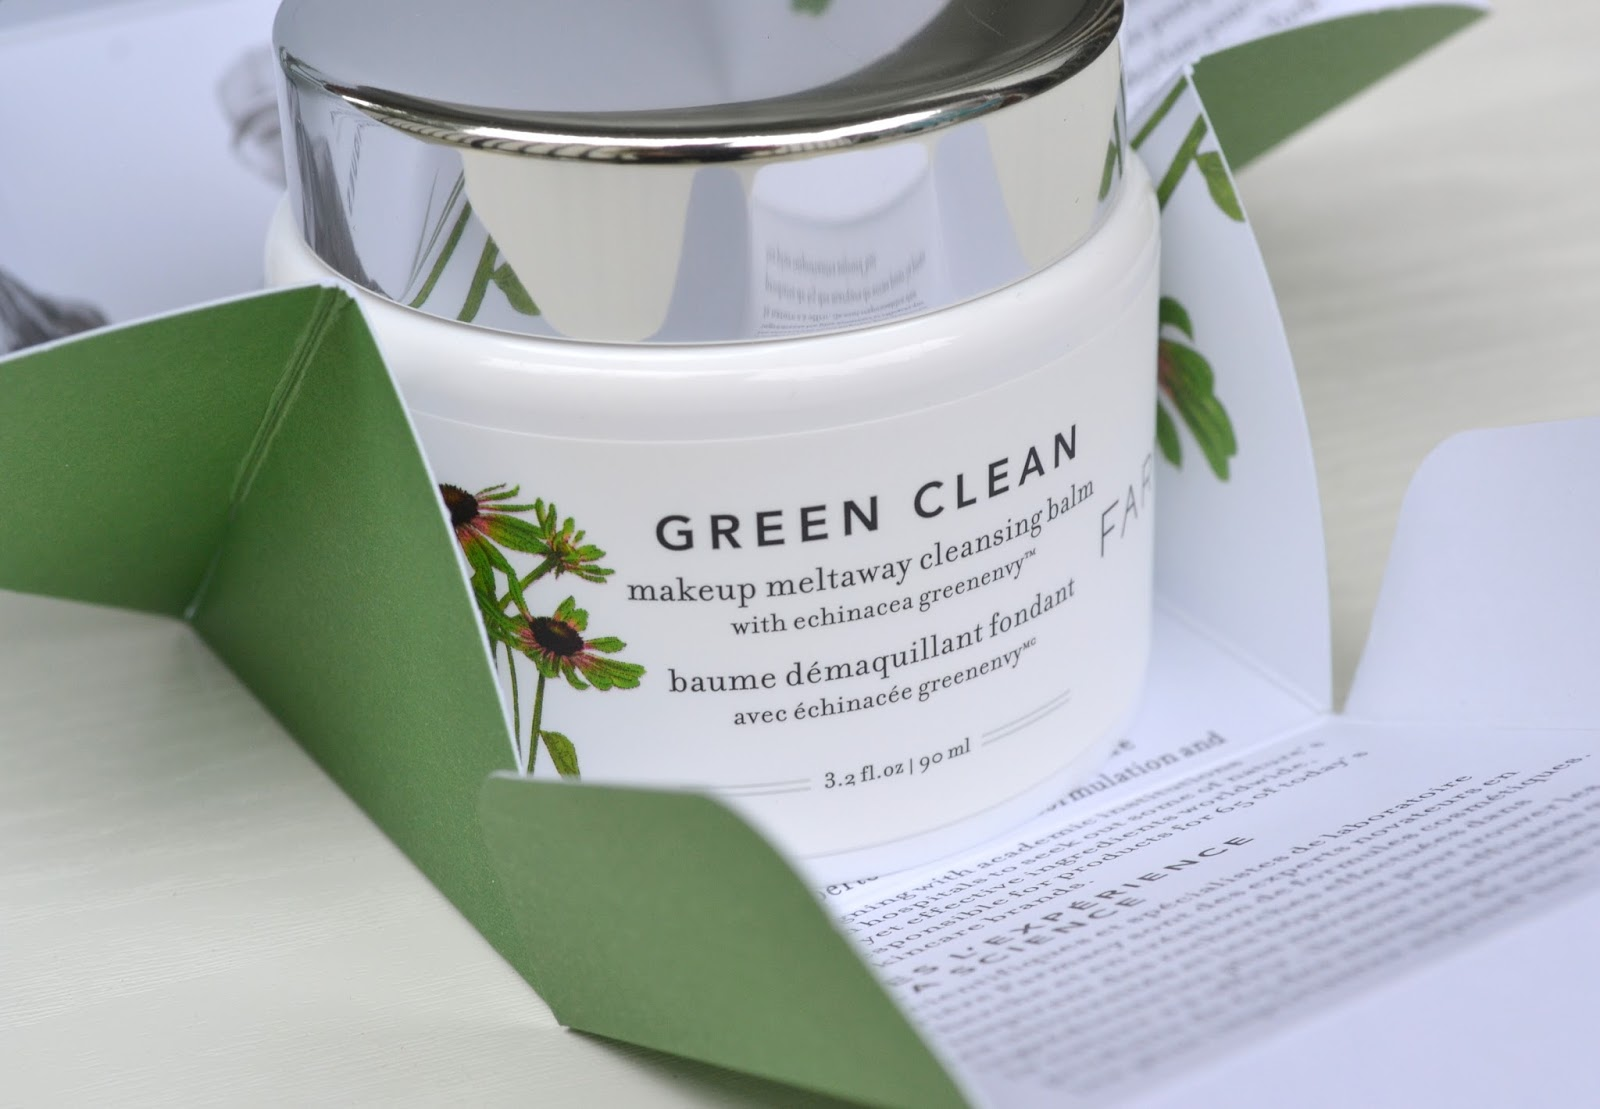 Green Clean Makeup Meltaway Cleansing Balm with Echinacea by farmacy #5